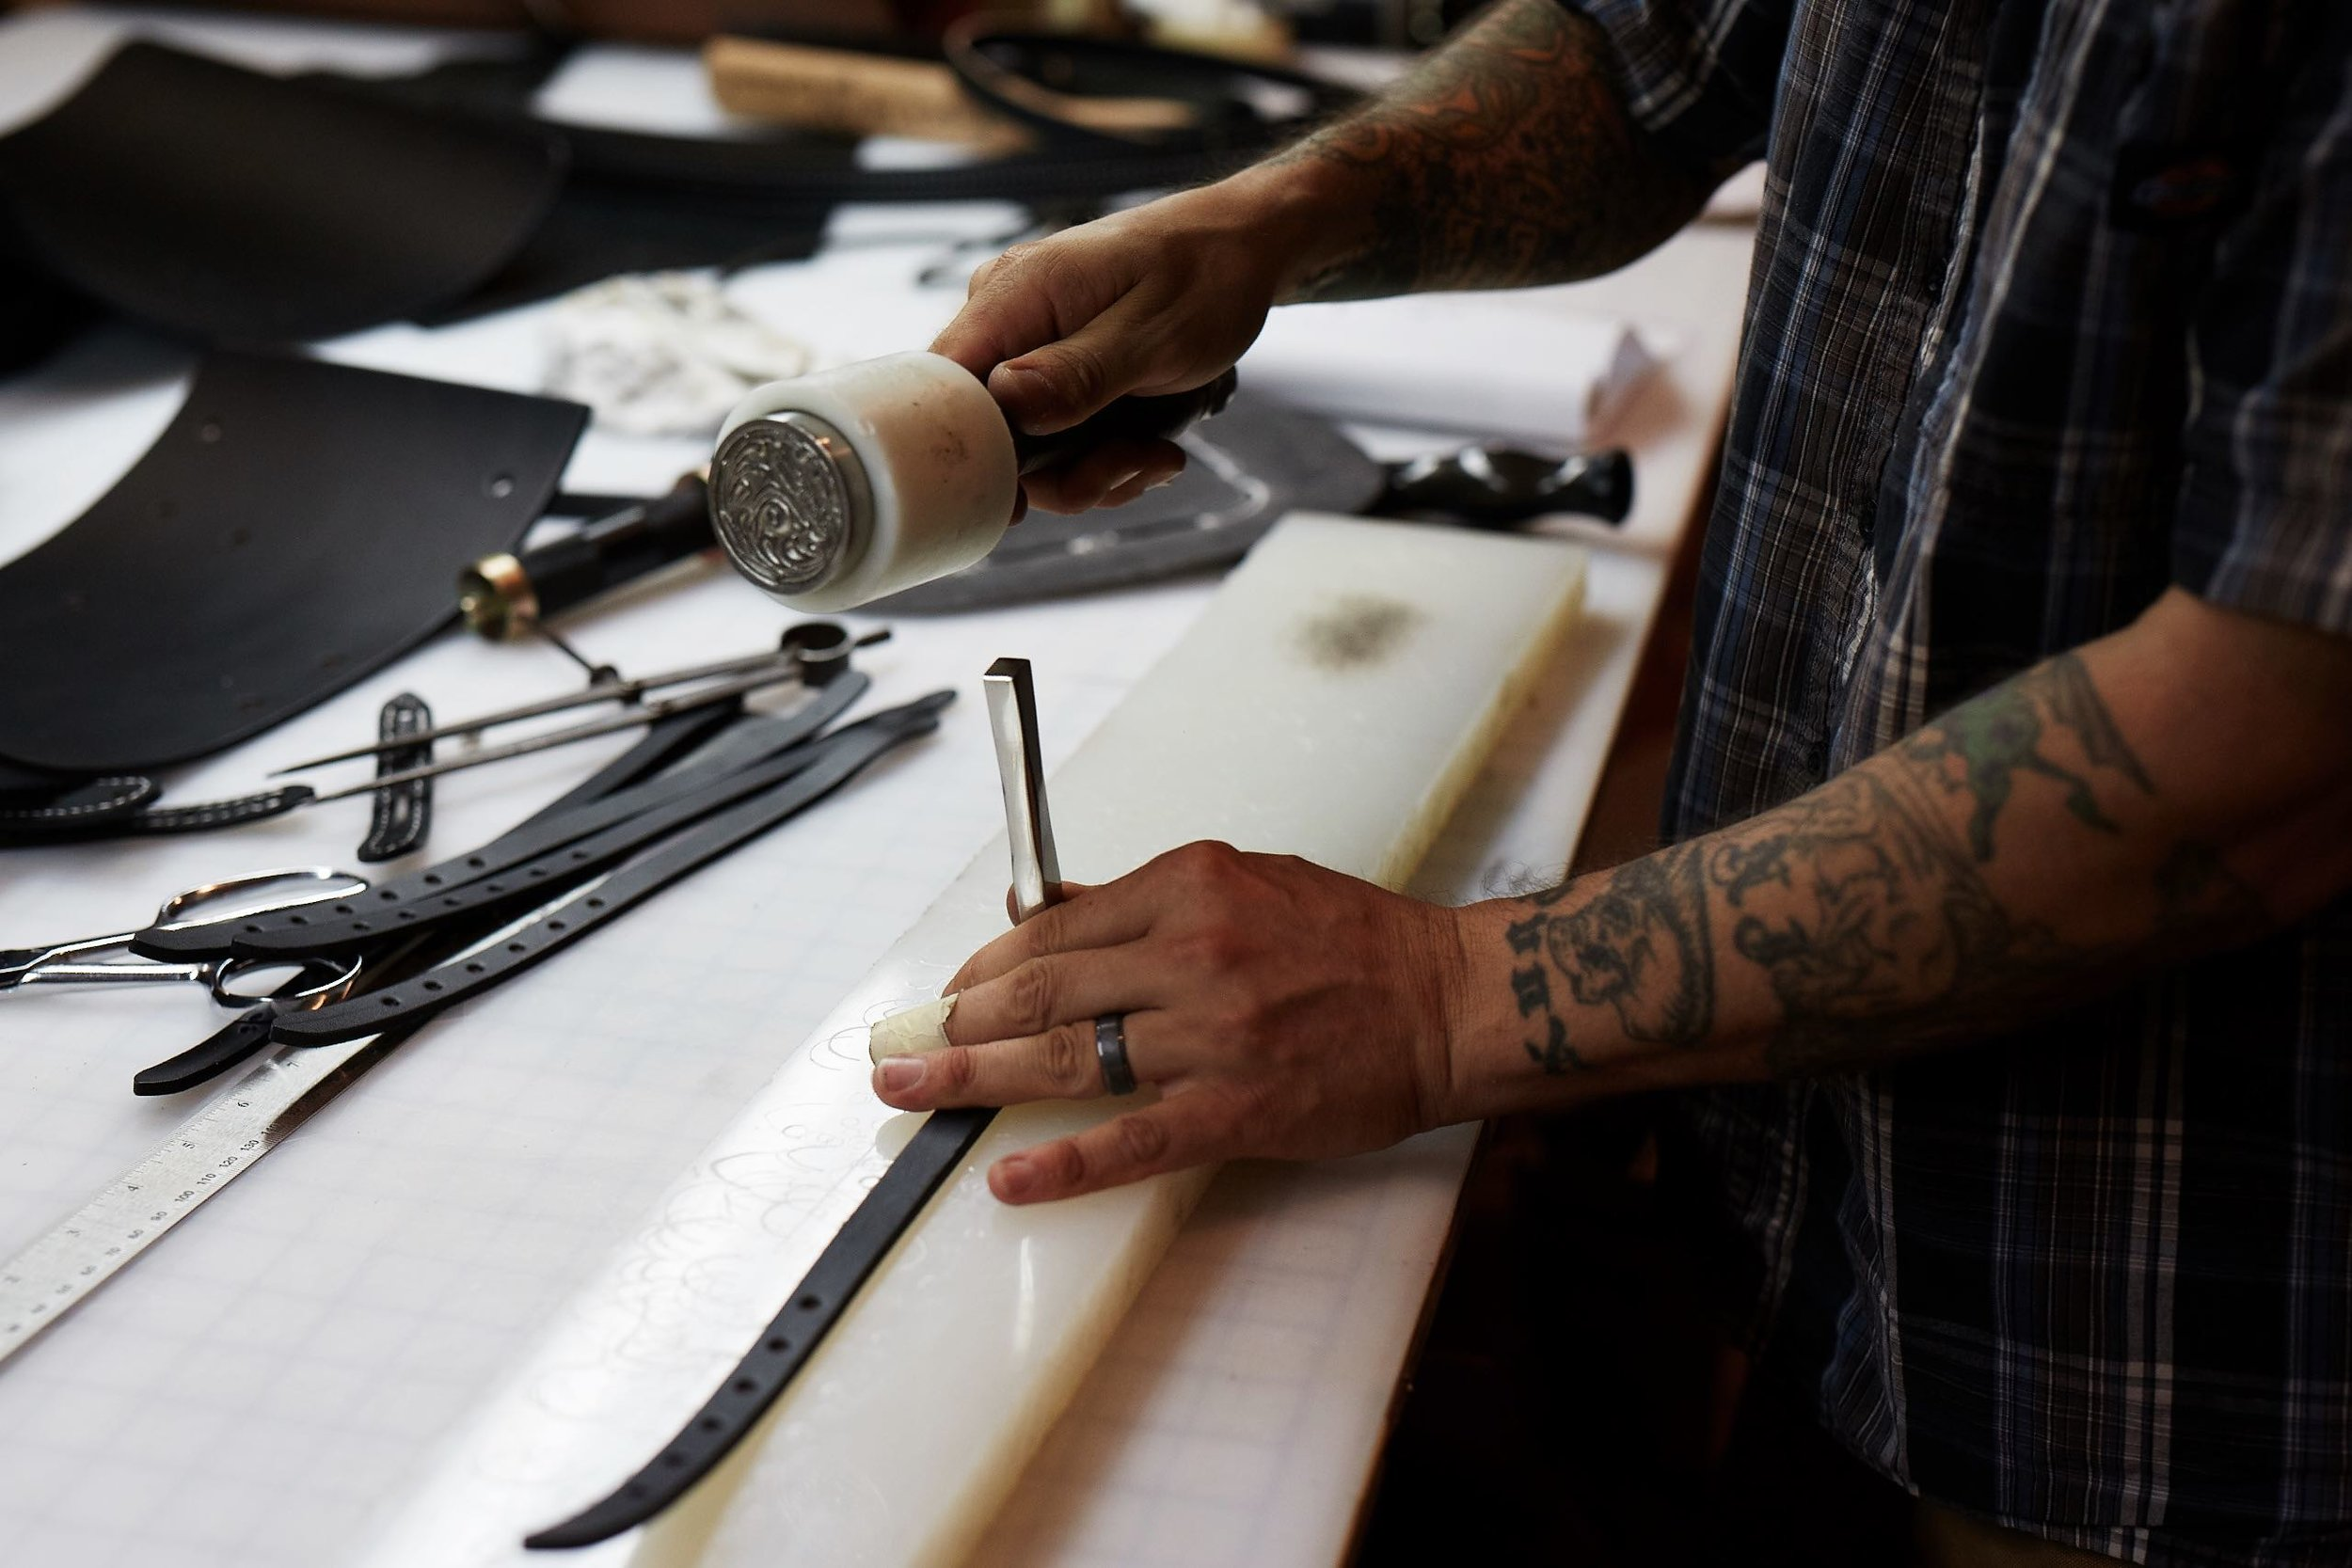 Jay Teske Leather Co. makes all of their products in their Kingston, New York workshop. Photo by Brandon Schulman.